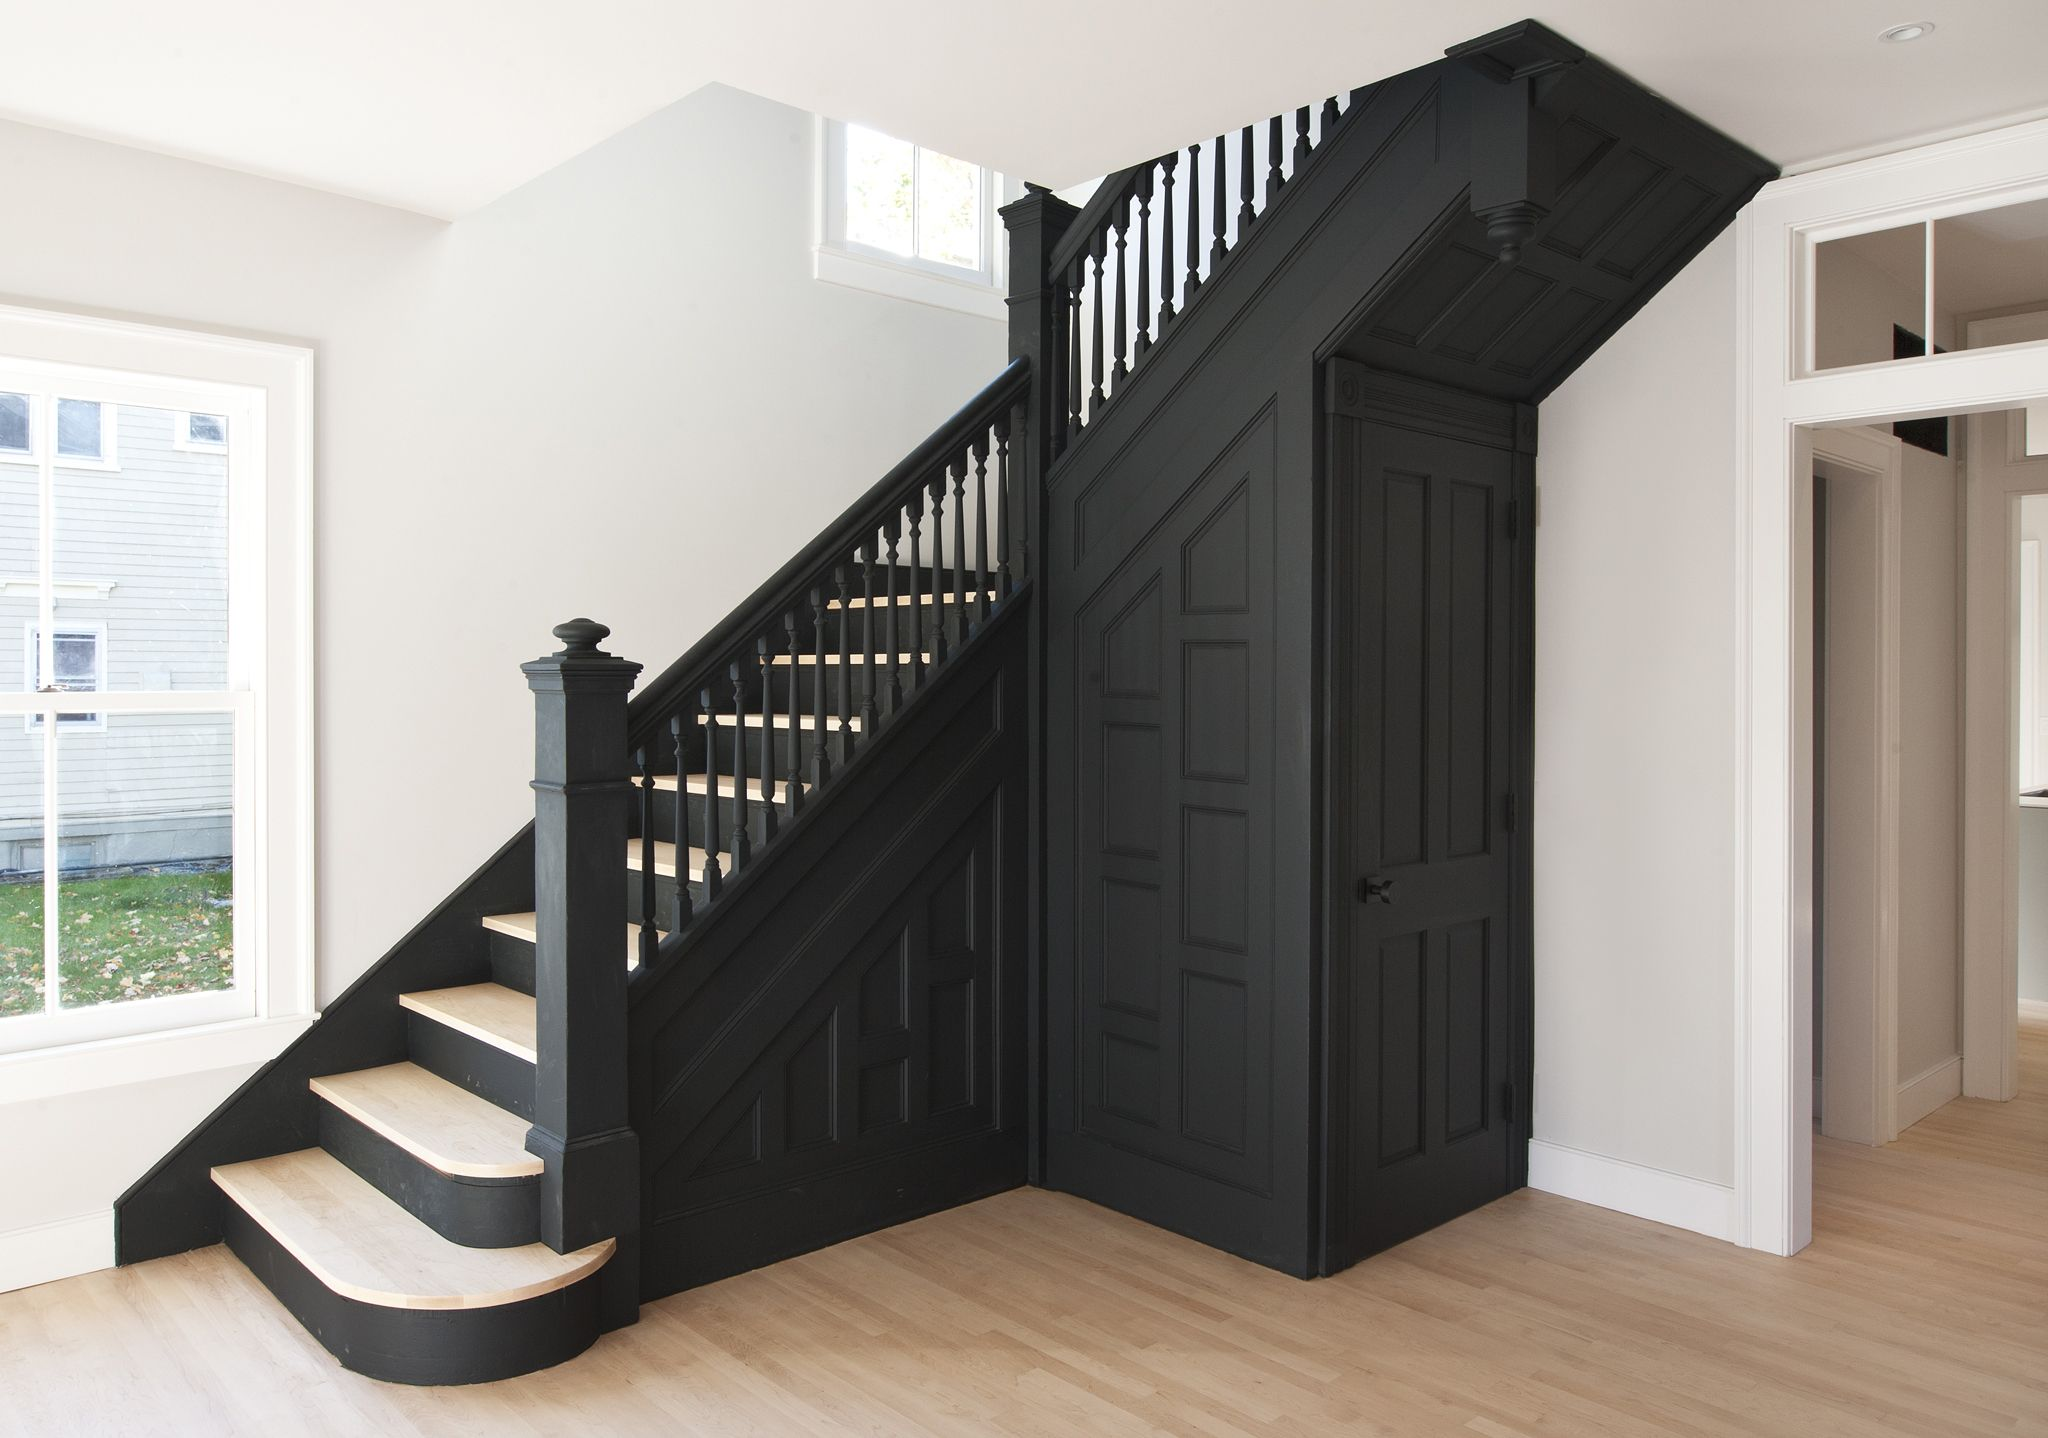 historic stair painted black in modern renovation of turn-of-the-century  Hudson Valley home | Modern renovation, Painted stairs, Staircase design